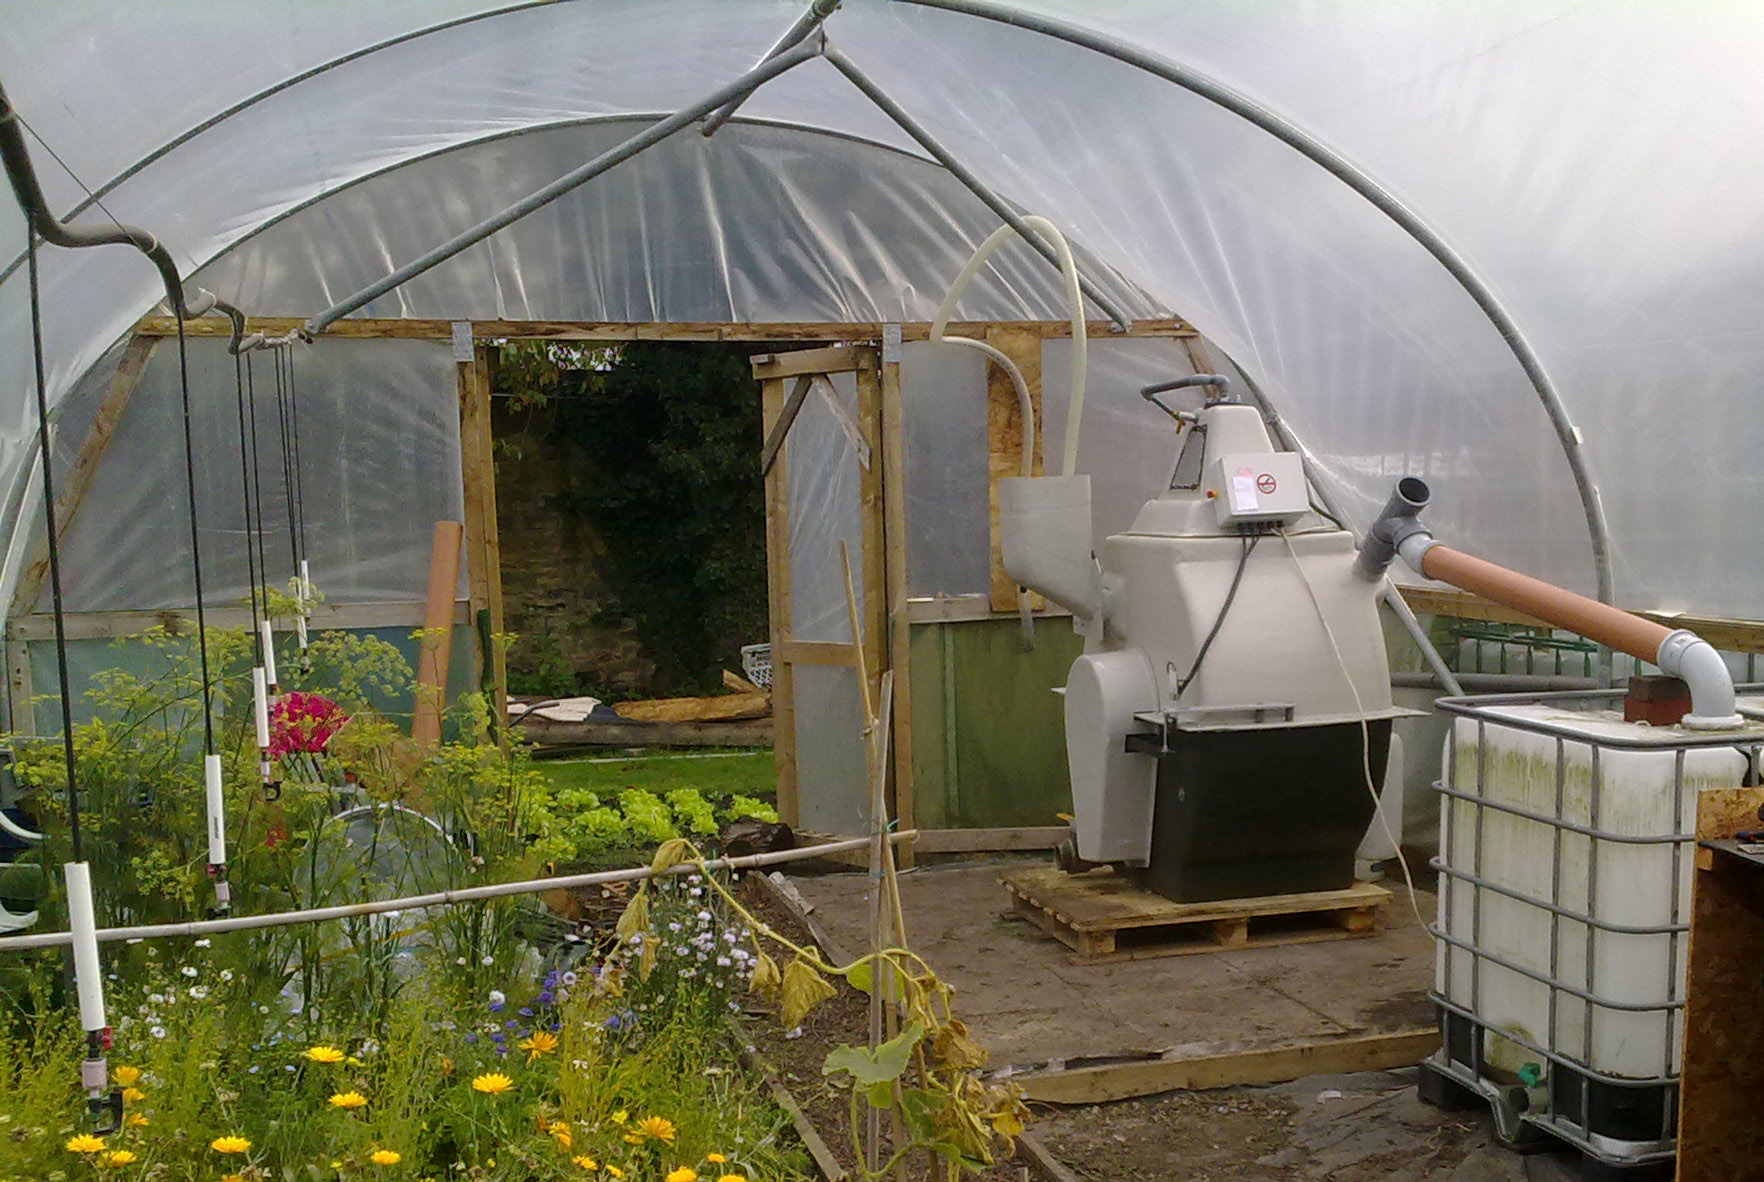 Early experimentation of anaerobic digester in polytunnel. CREDIT: Methanogen